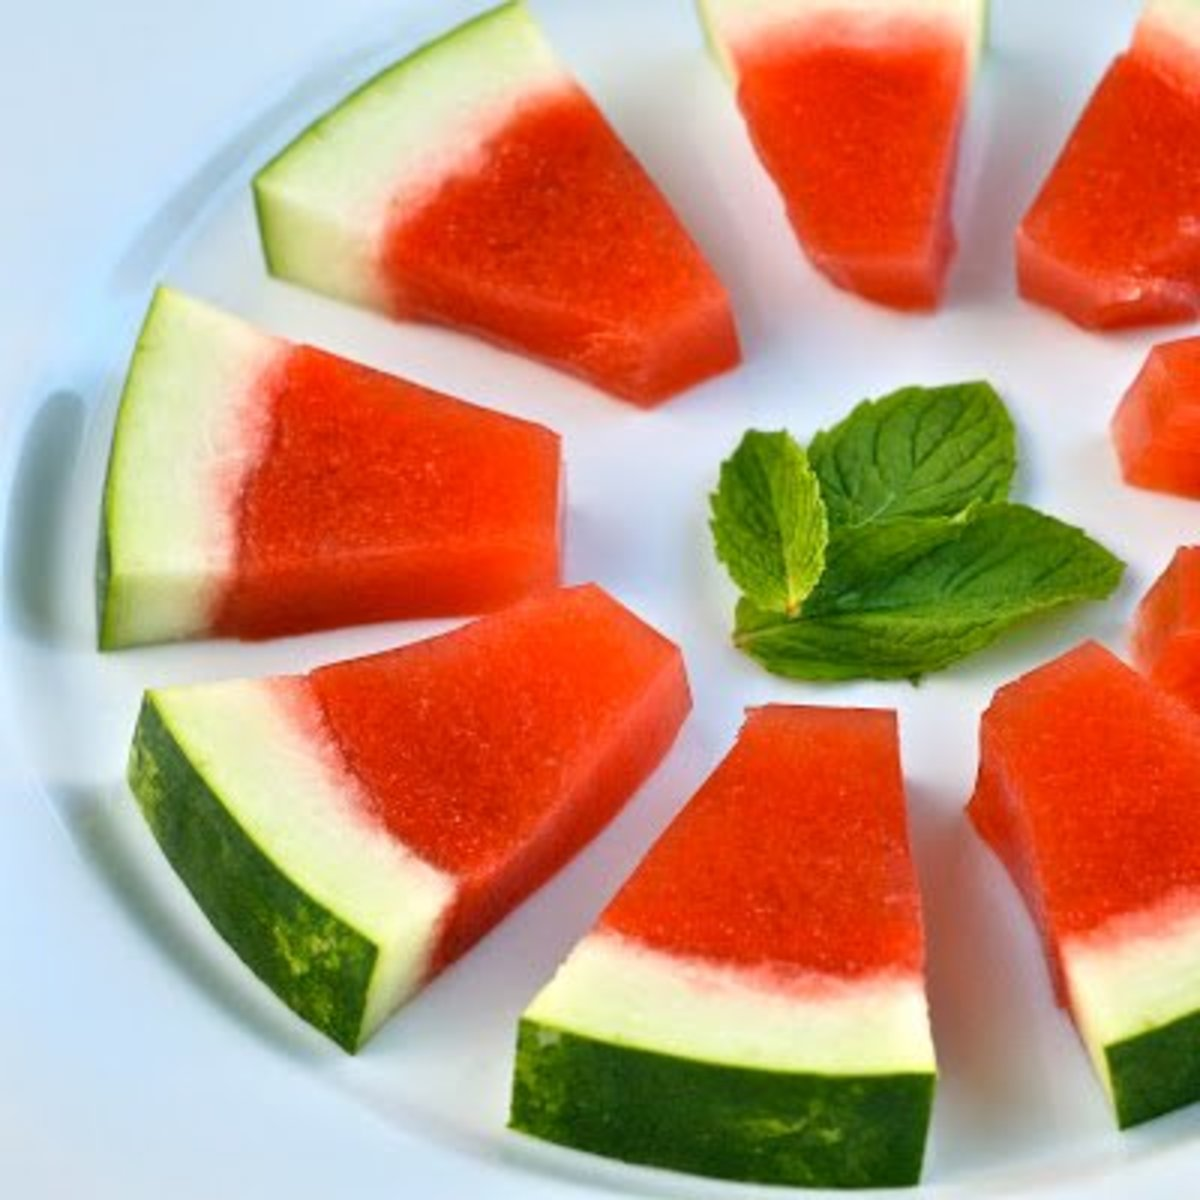 Watermelon Jello shots, served in the original watermelon rind.